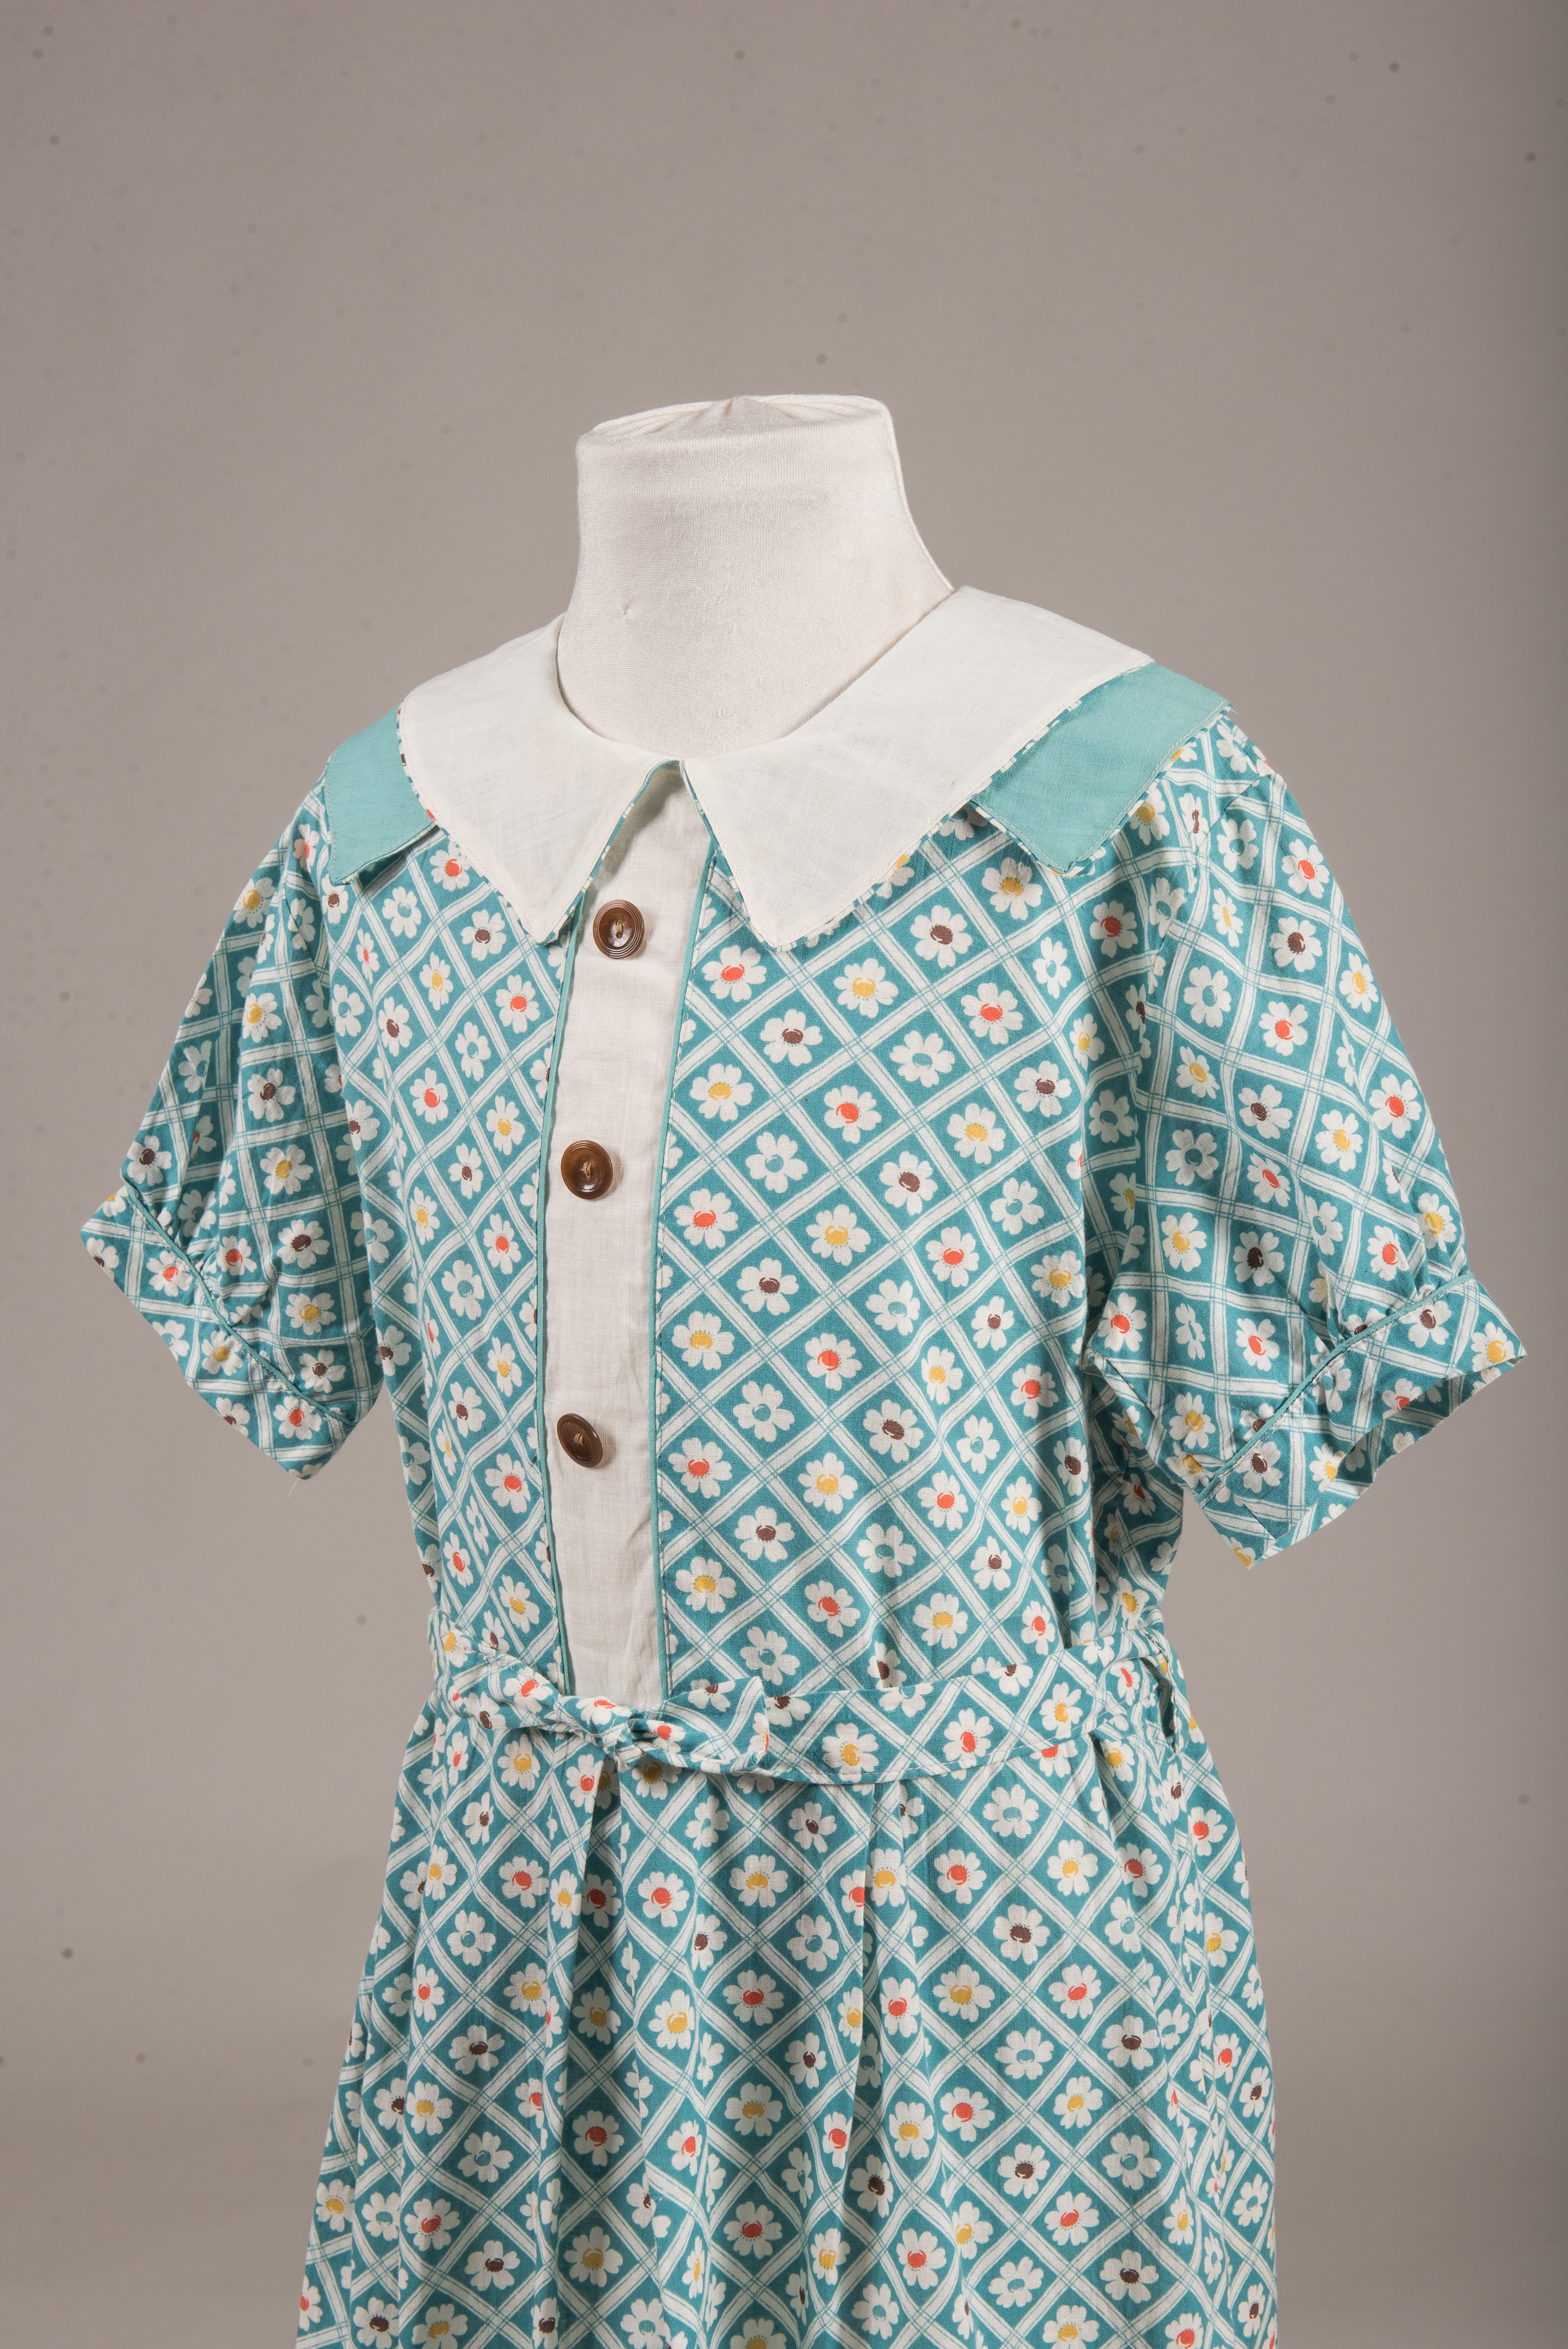 Dress from library exhibit